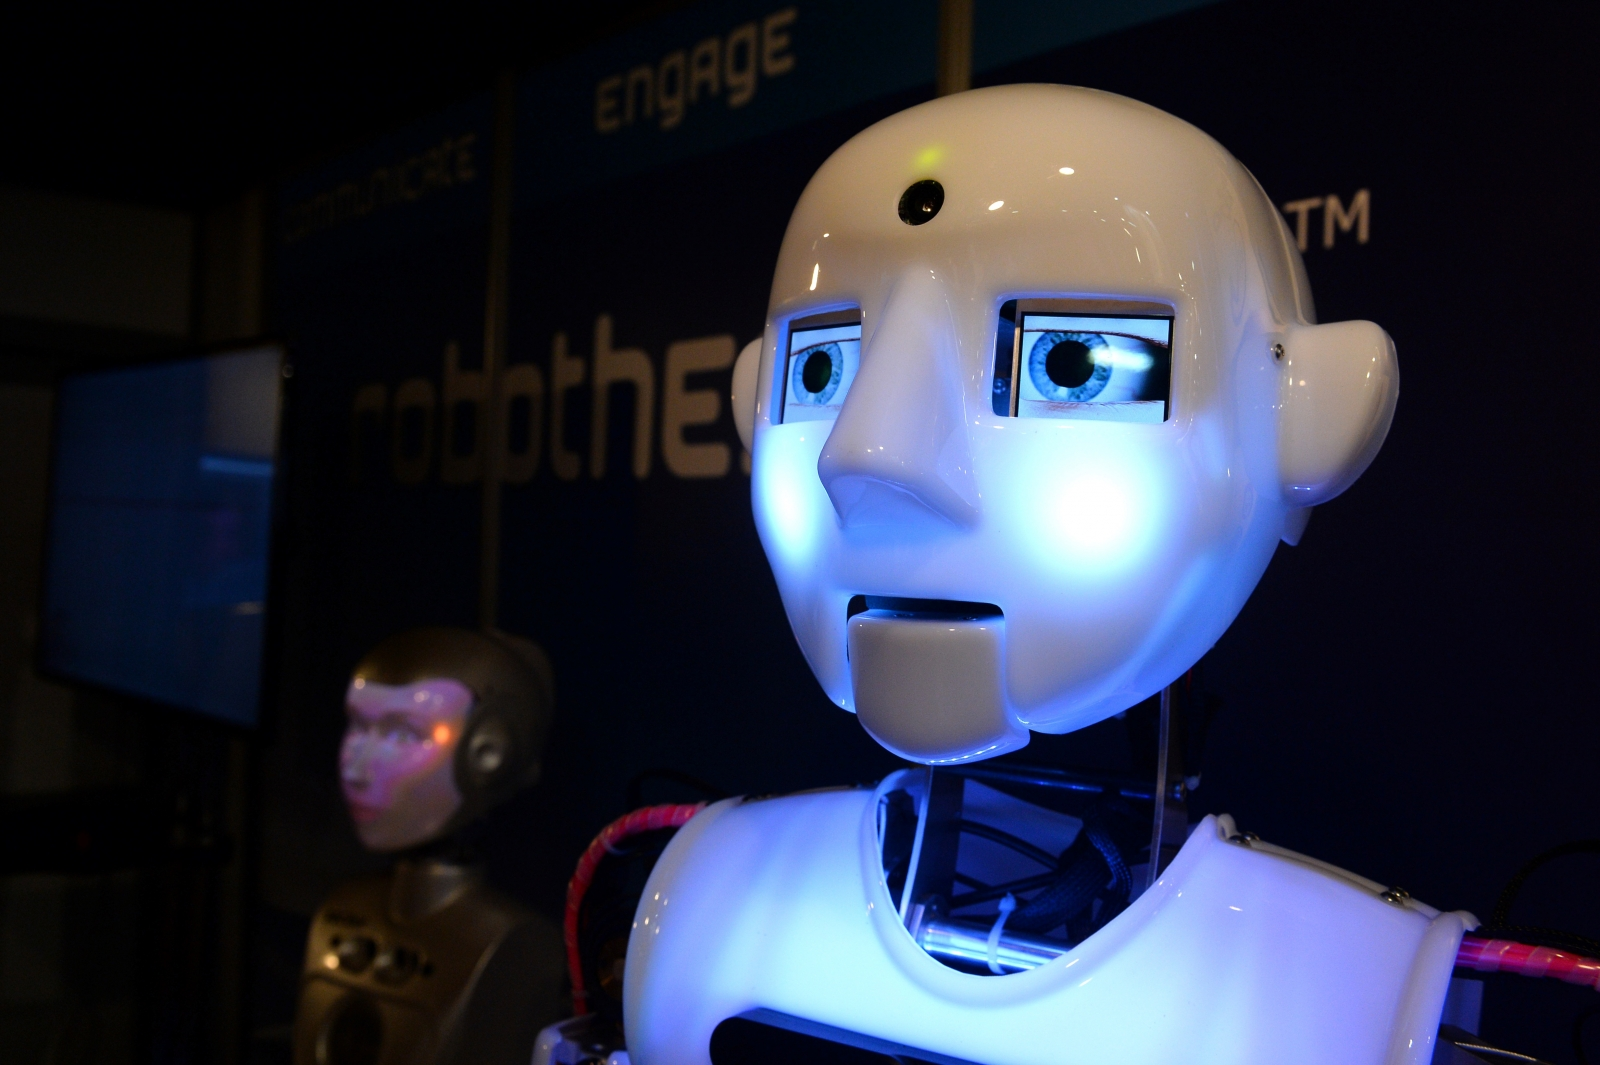 Business services jobs at risk of automation